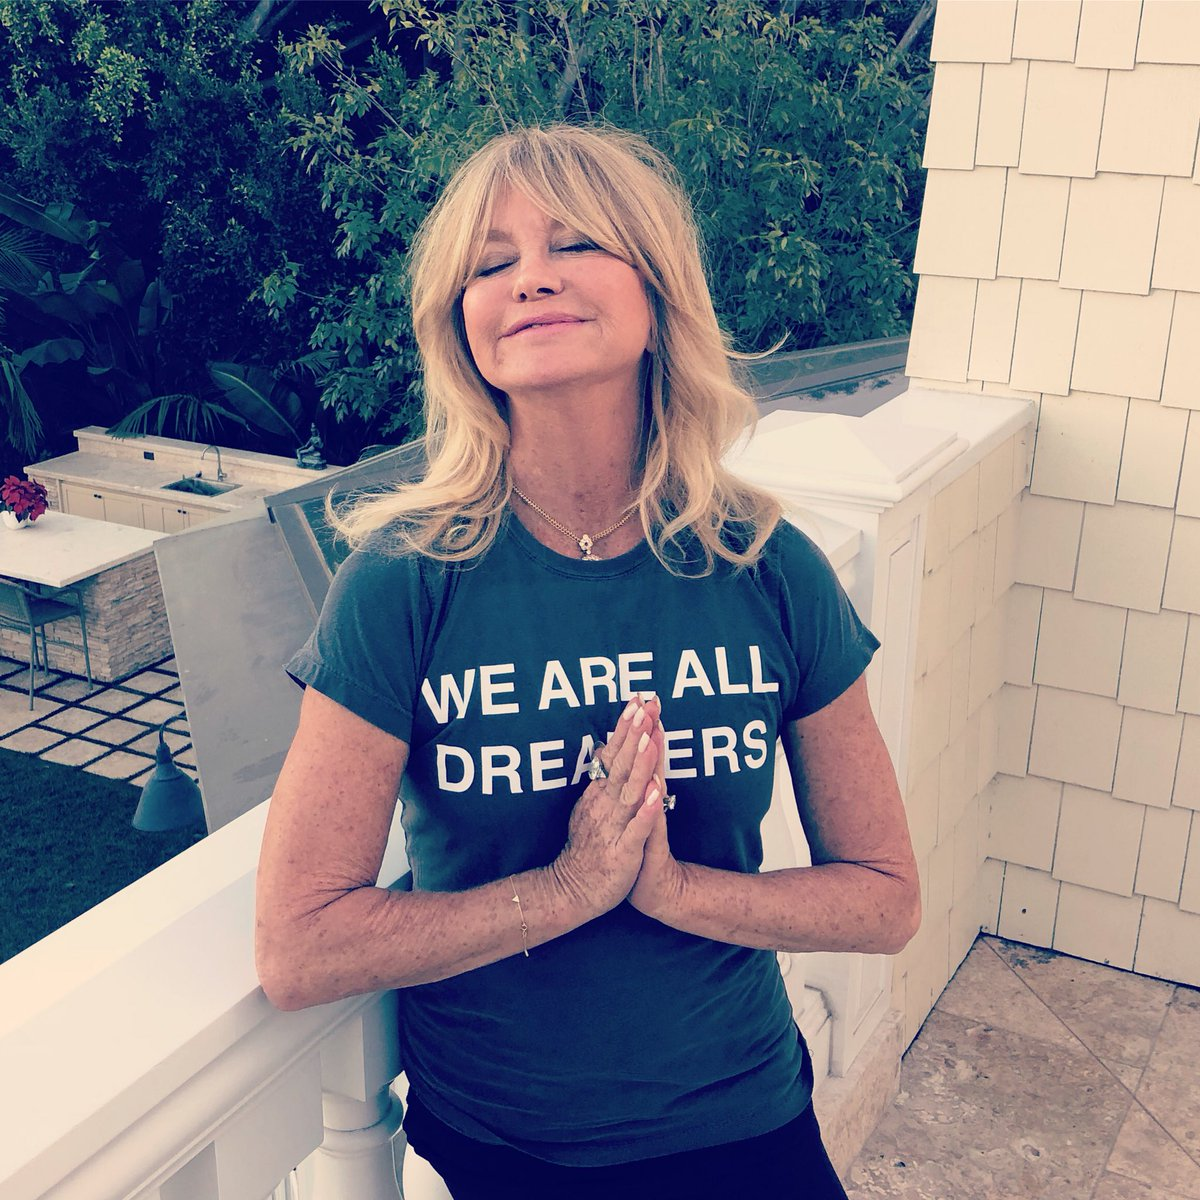 Today and every day, we are all Dreamers. Please call Congress and ask that they pass the #DreamAct http://emersoncollective.com/Dreamers